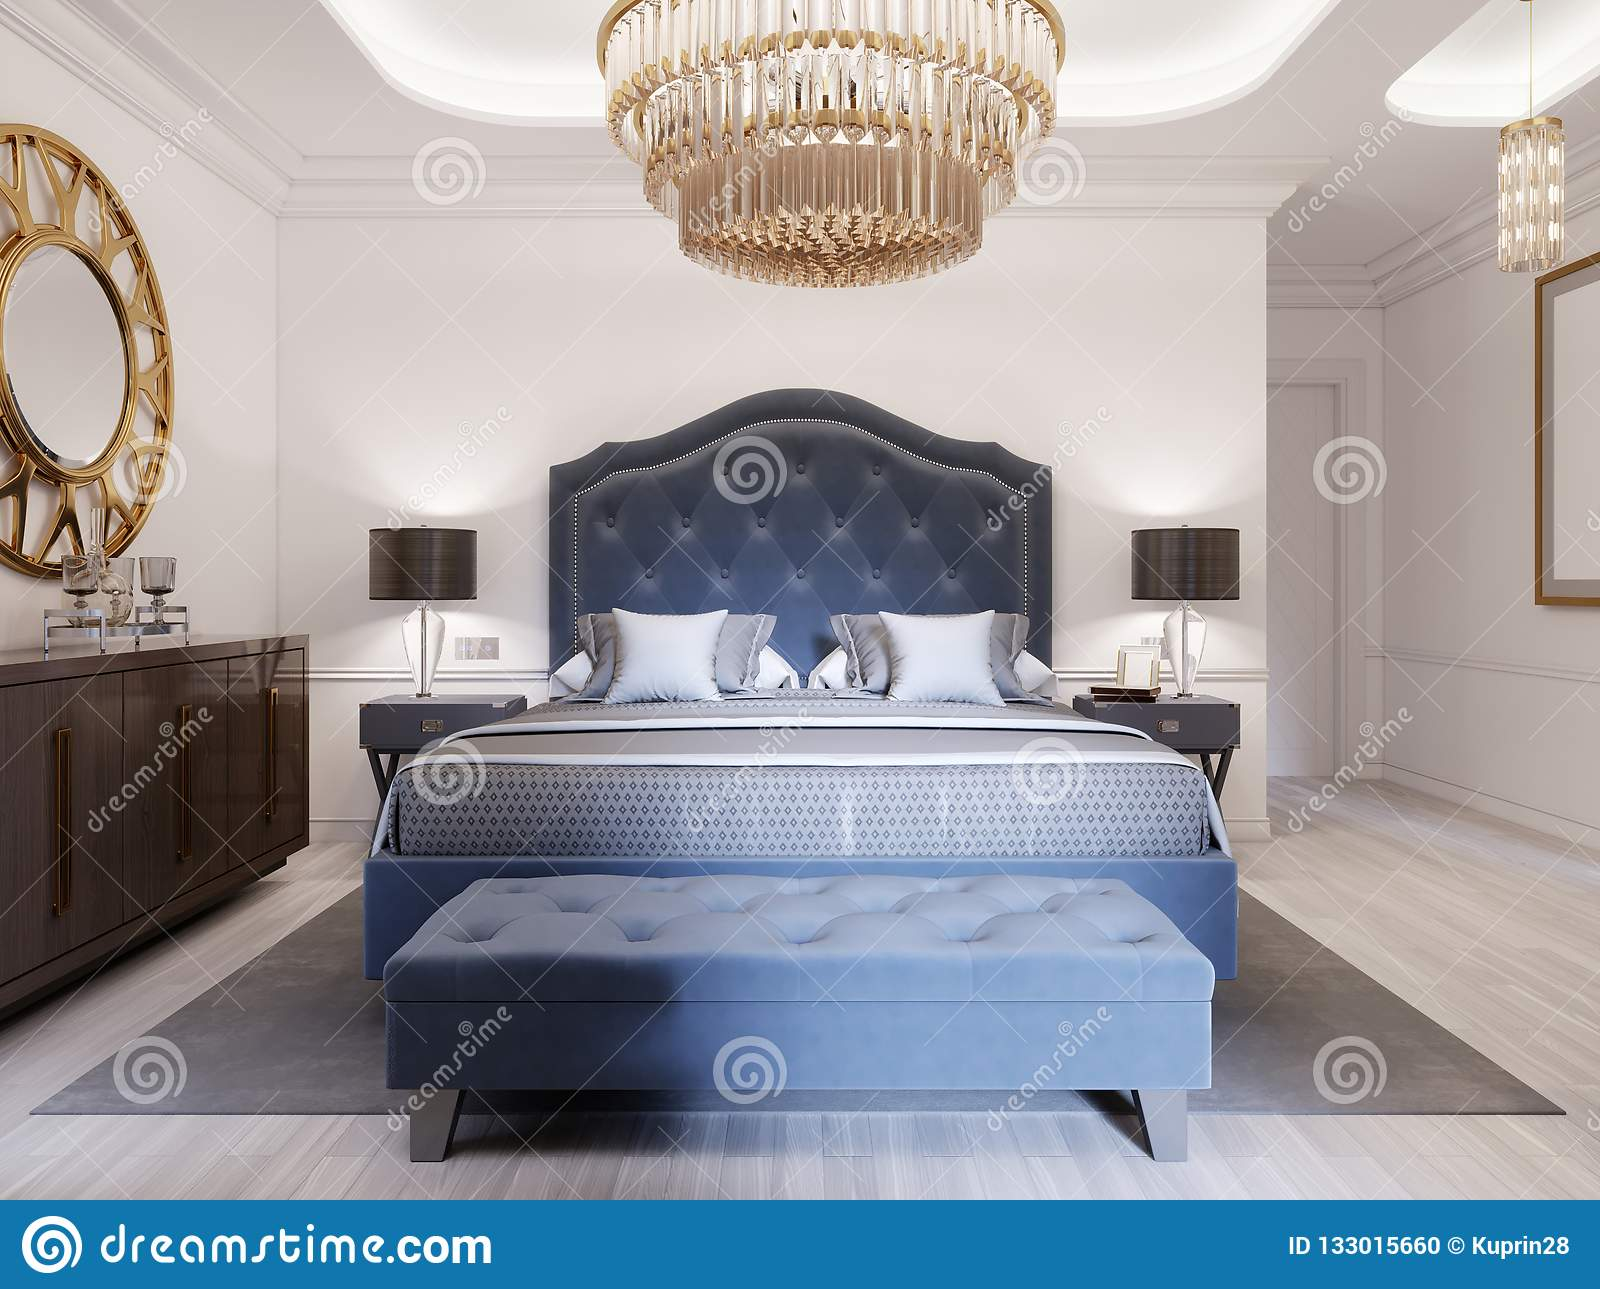 Modern Bed In Classic Blue Style With Bedside Table And Lamp Large Glass Chandelier Over A Dresser With A Decor And A Golden Stock Illustration Illustration Of Contemporary Decoration 133015660